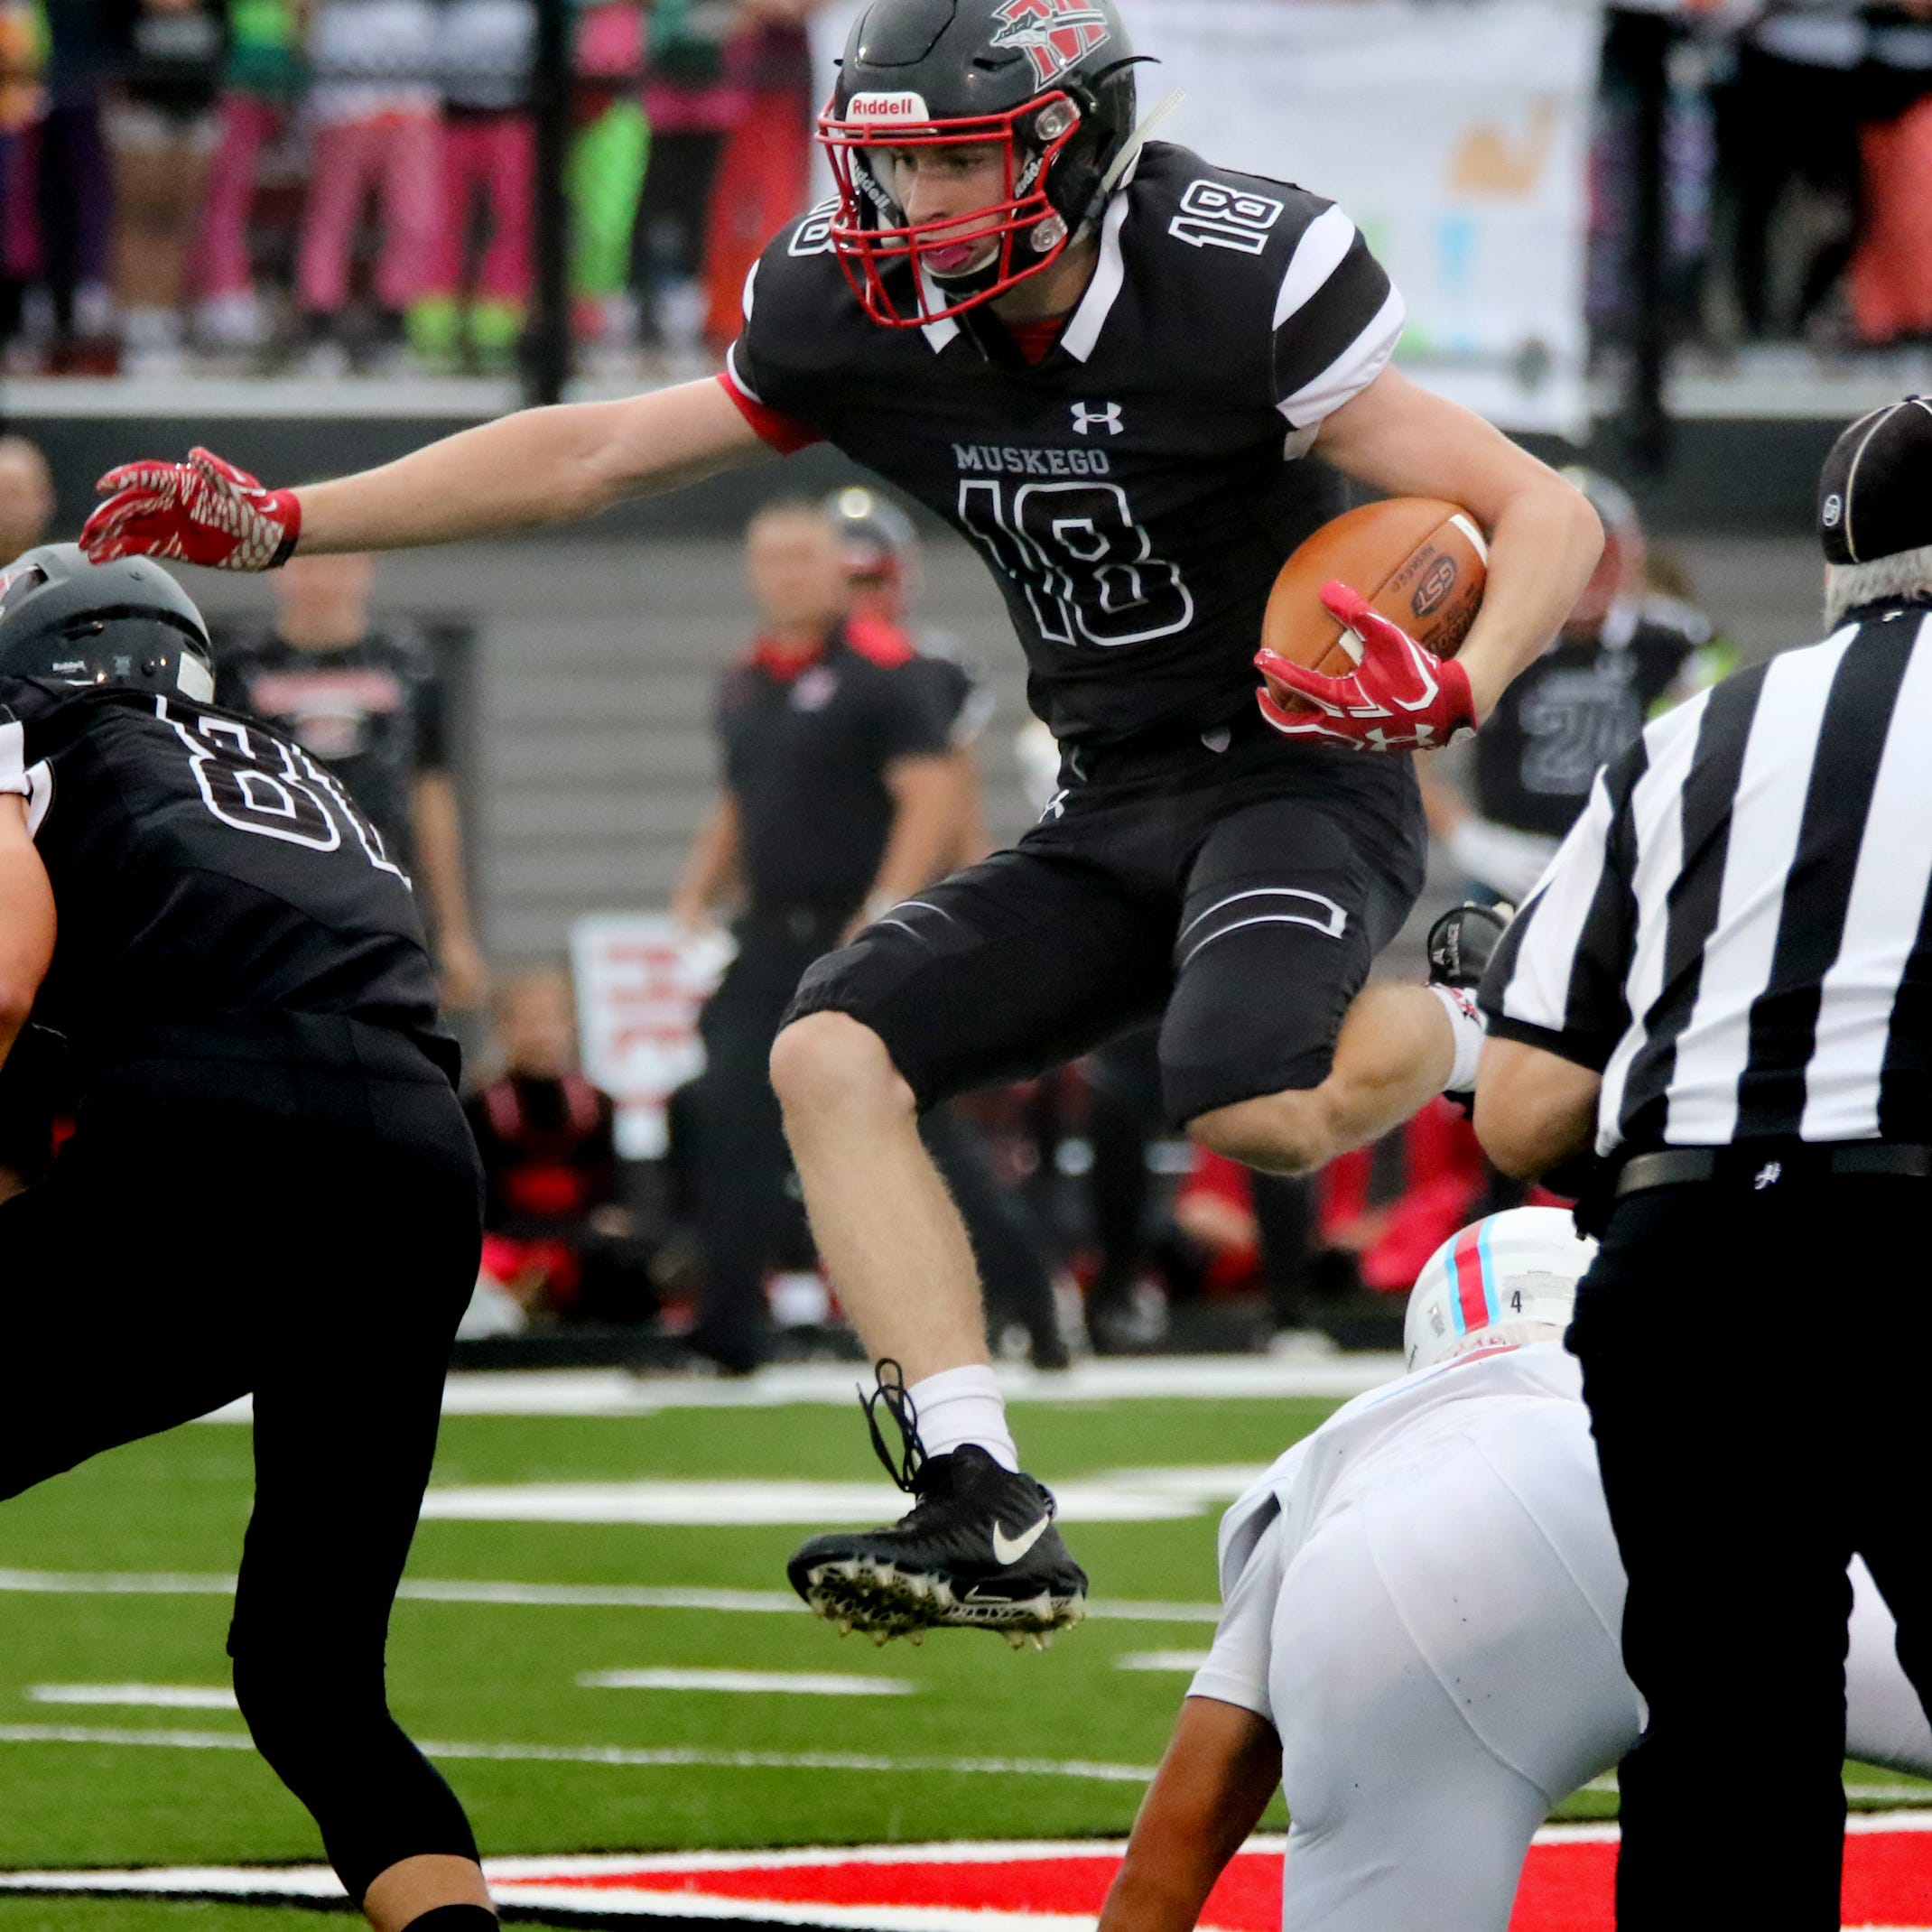 After losing its all-state running back, Muskego has kept doing what it does best: run the ball and win games